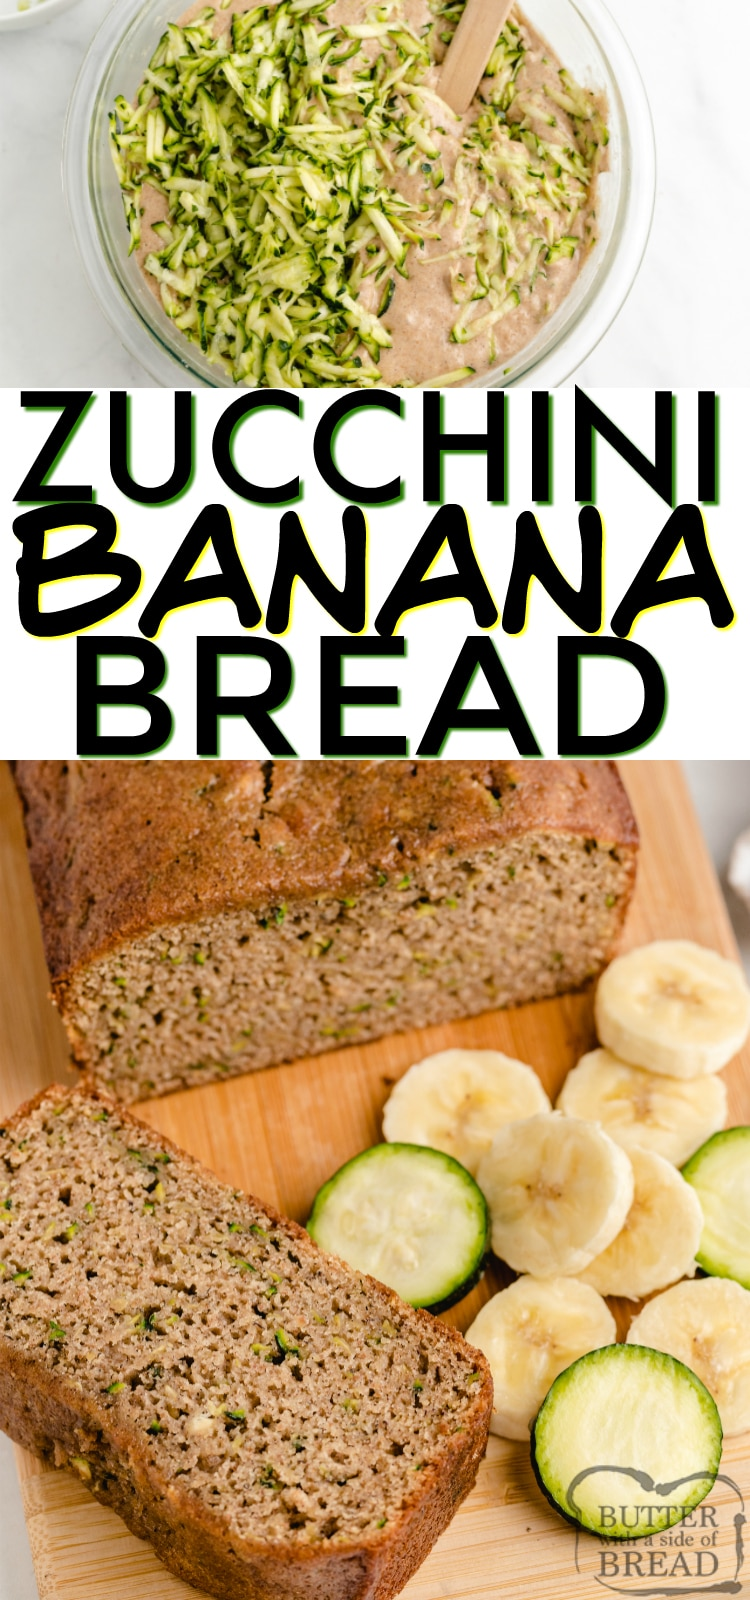 Zucchini Banana Bread is a perfect combination of zucchini bread and banana bread, all in one delicious quick bread recipe!